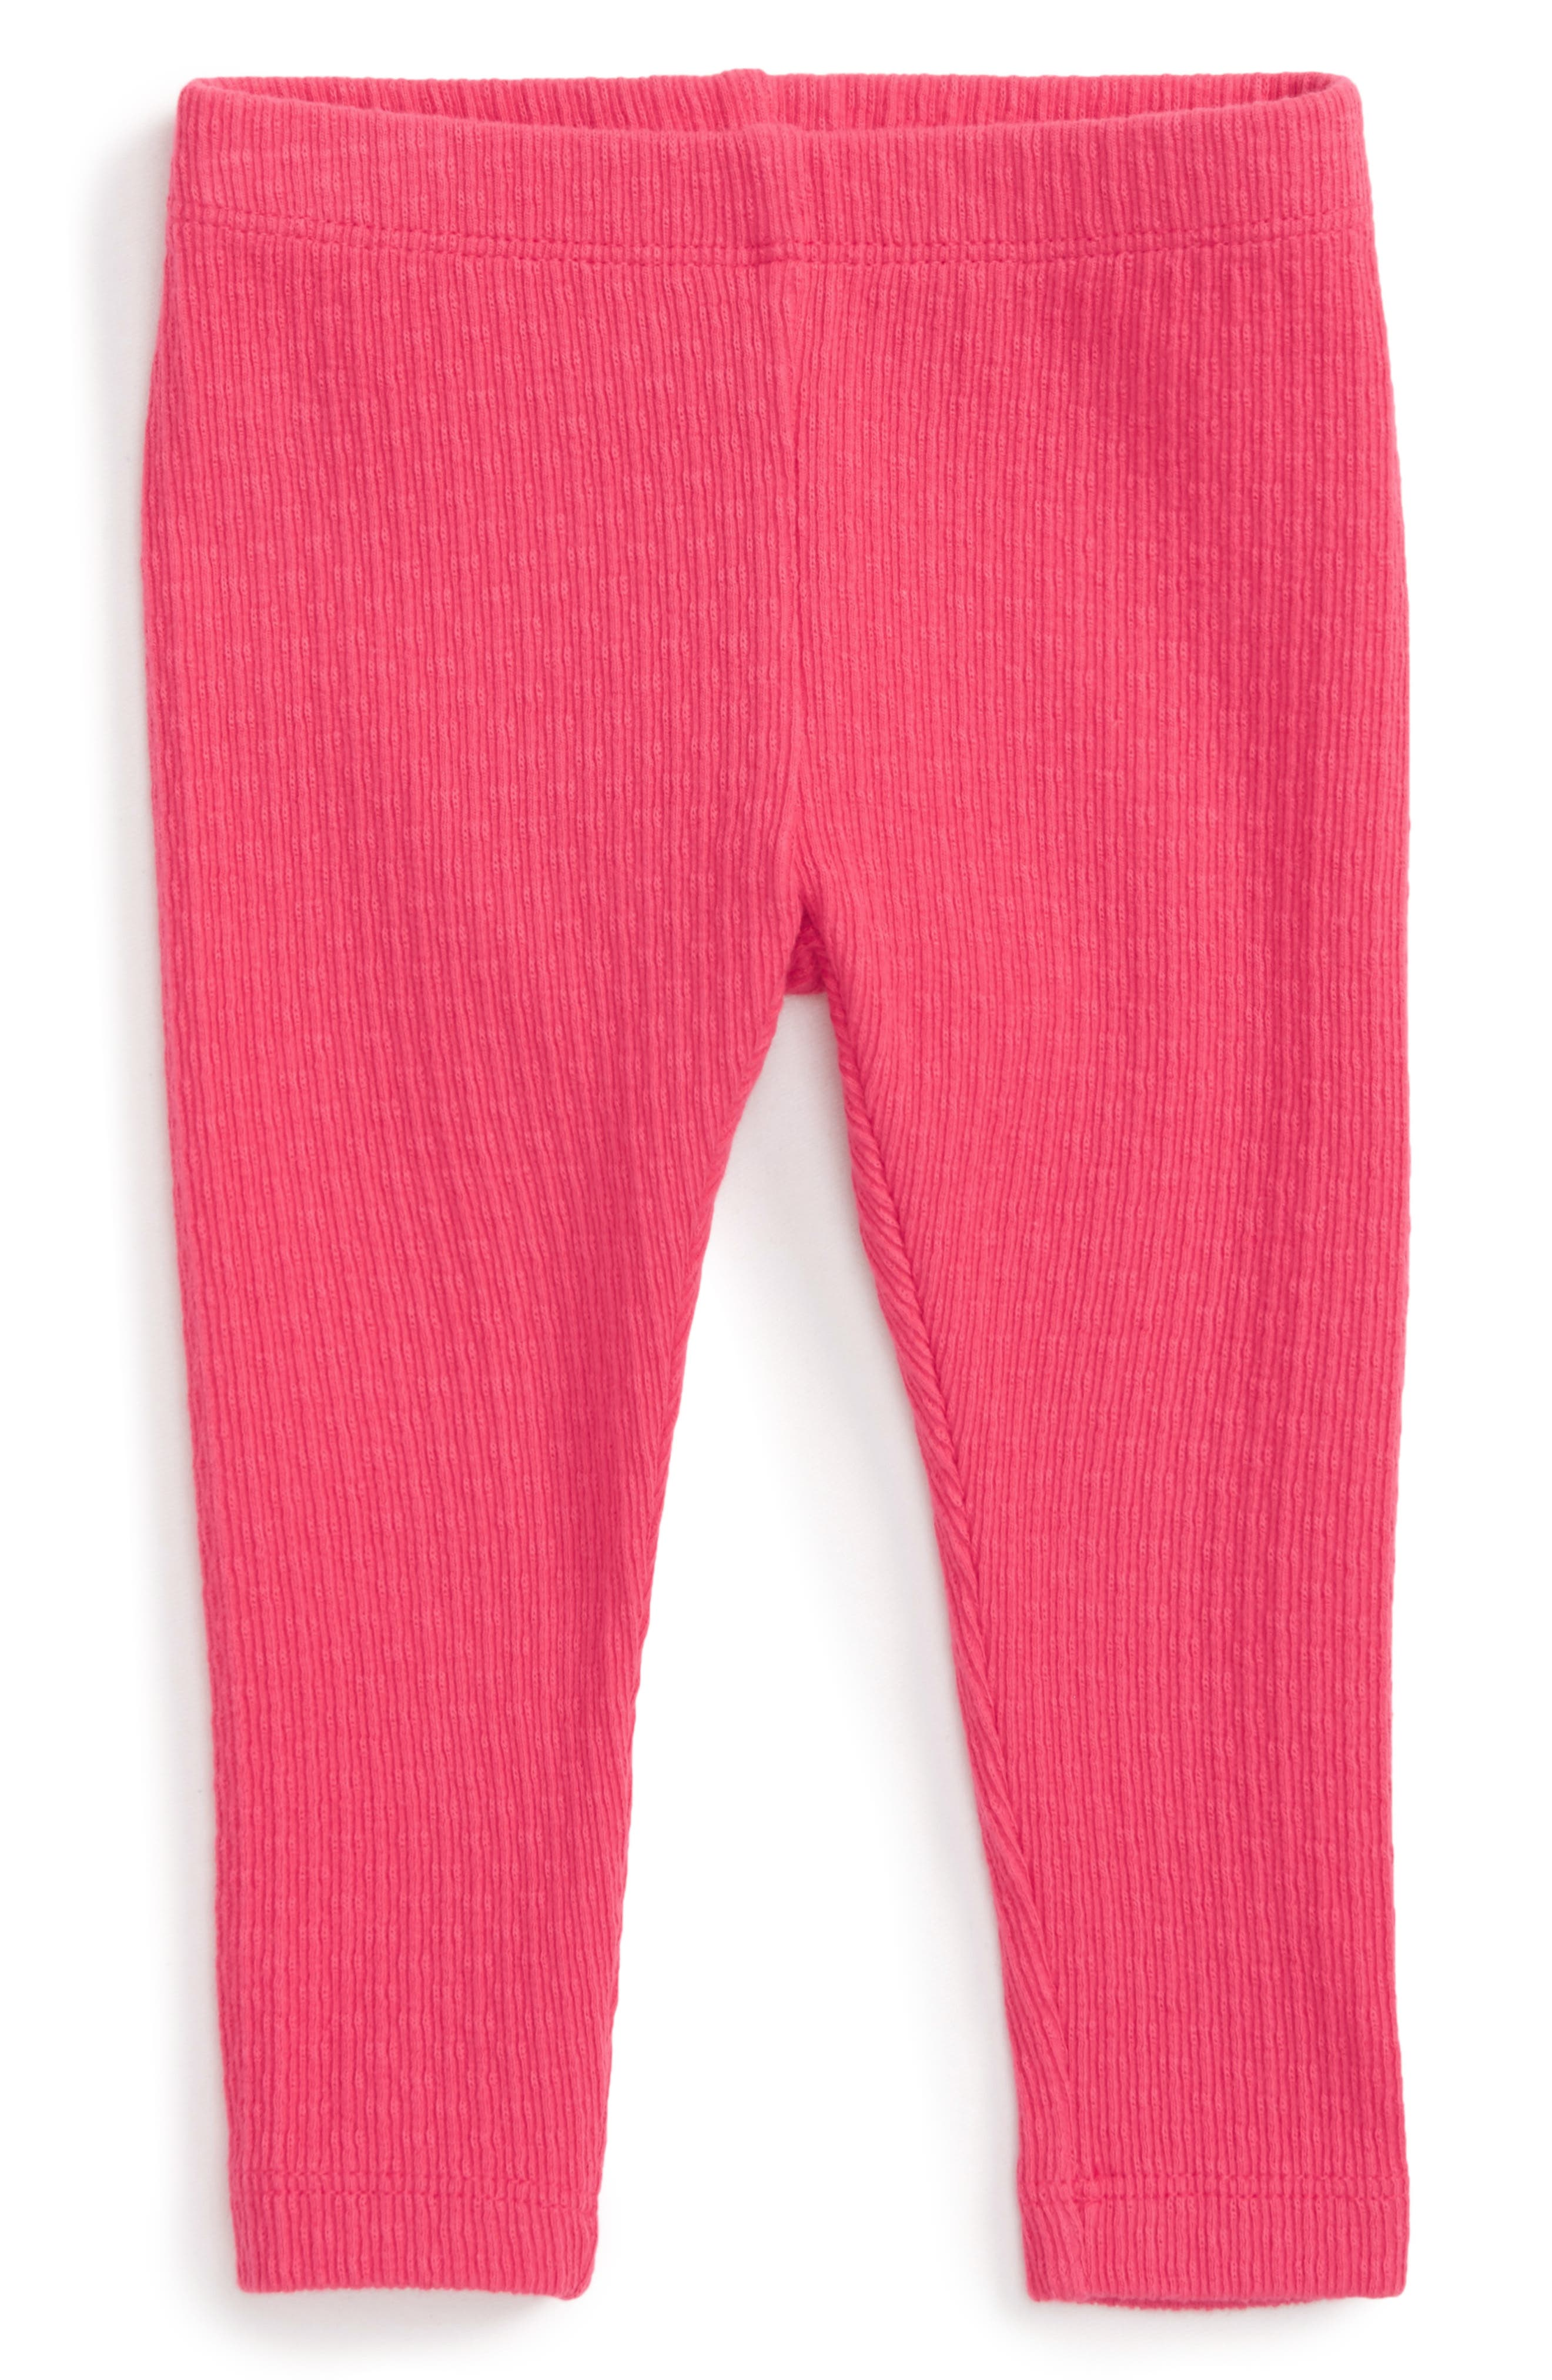 Alternate Image 1 Selected - Tea Collection Pointelle Leggings (Baby Girls)